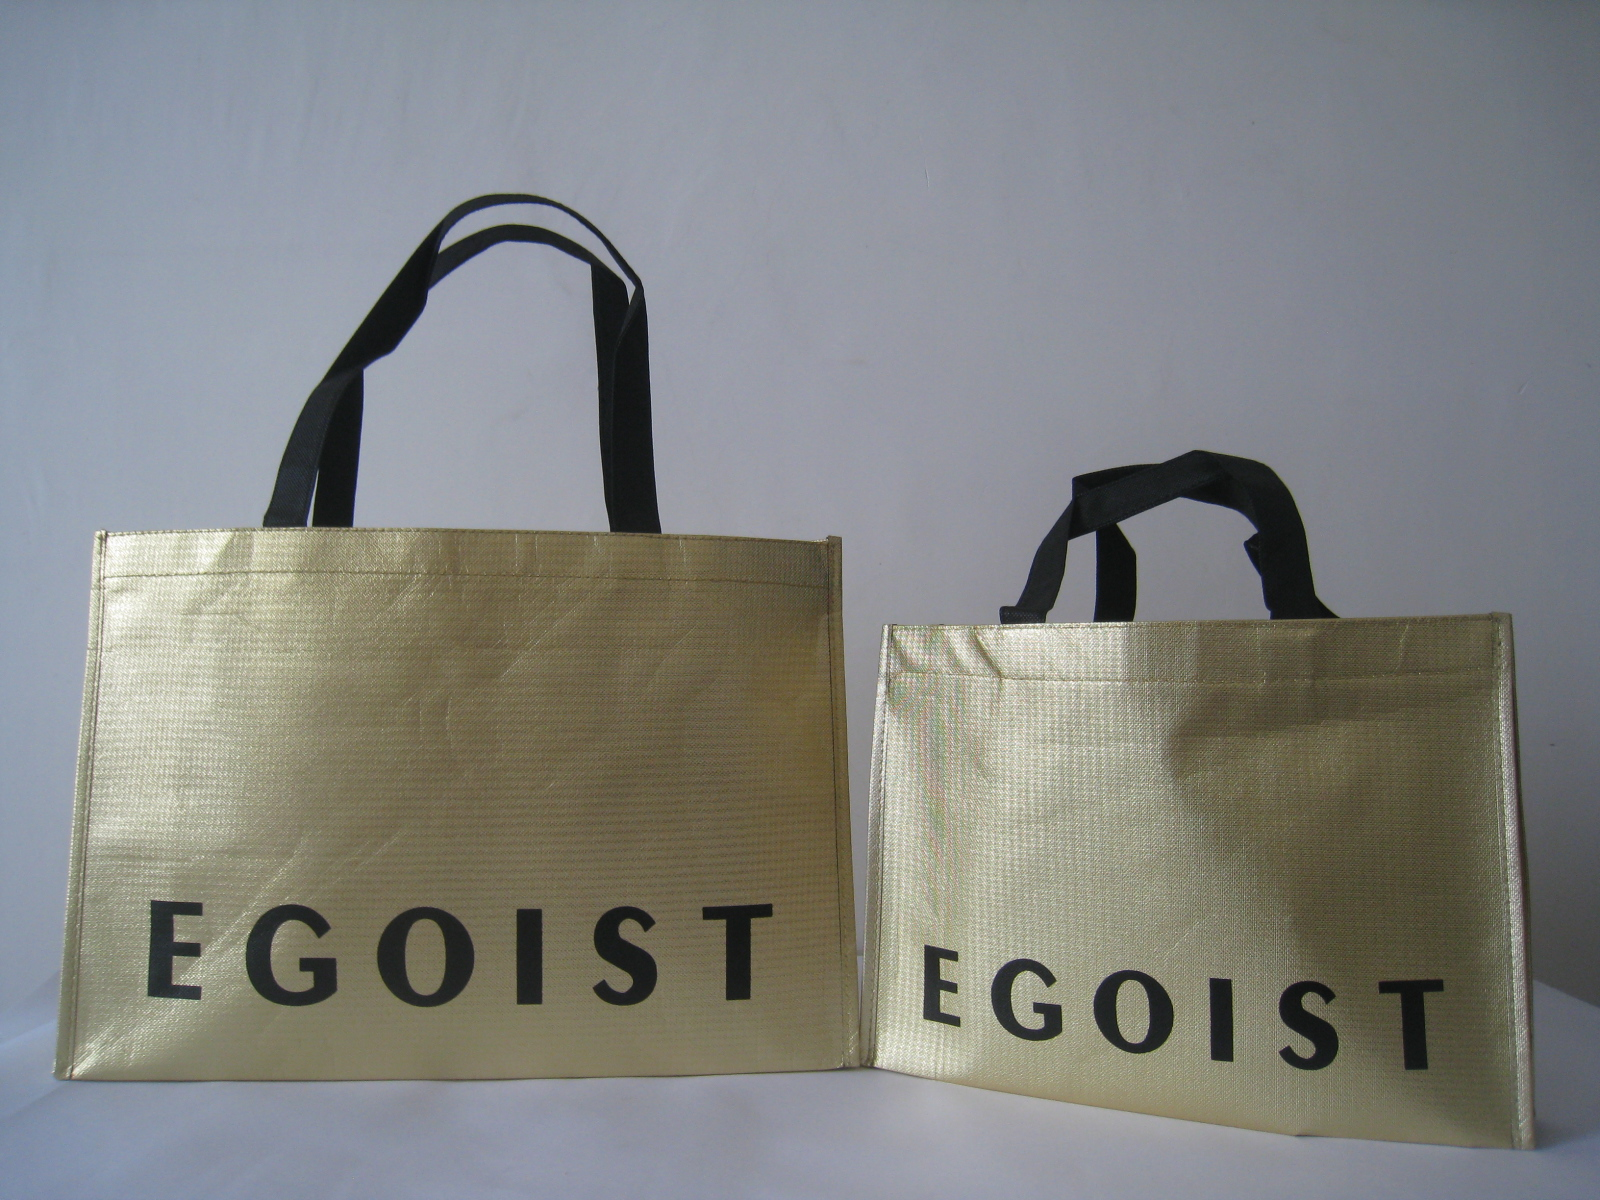 non woven bag this is a egoist non woven bag